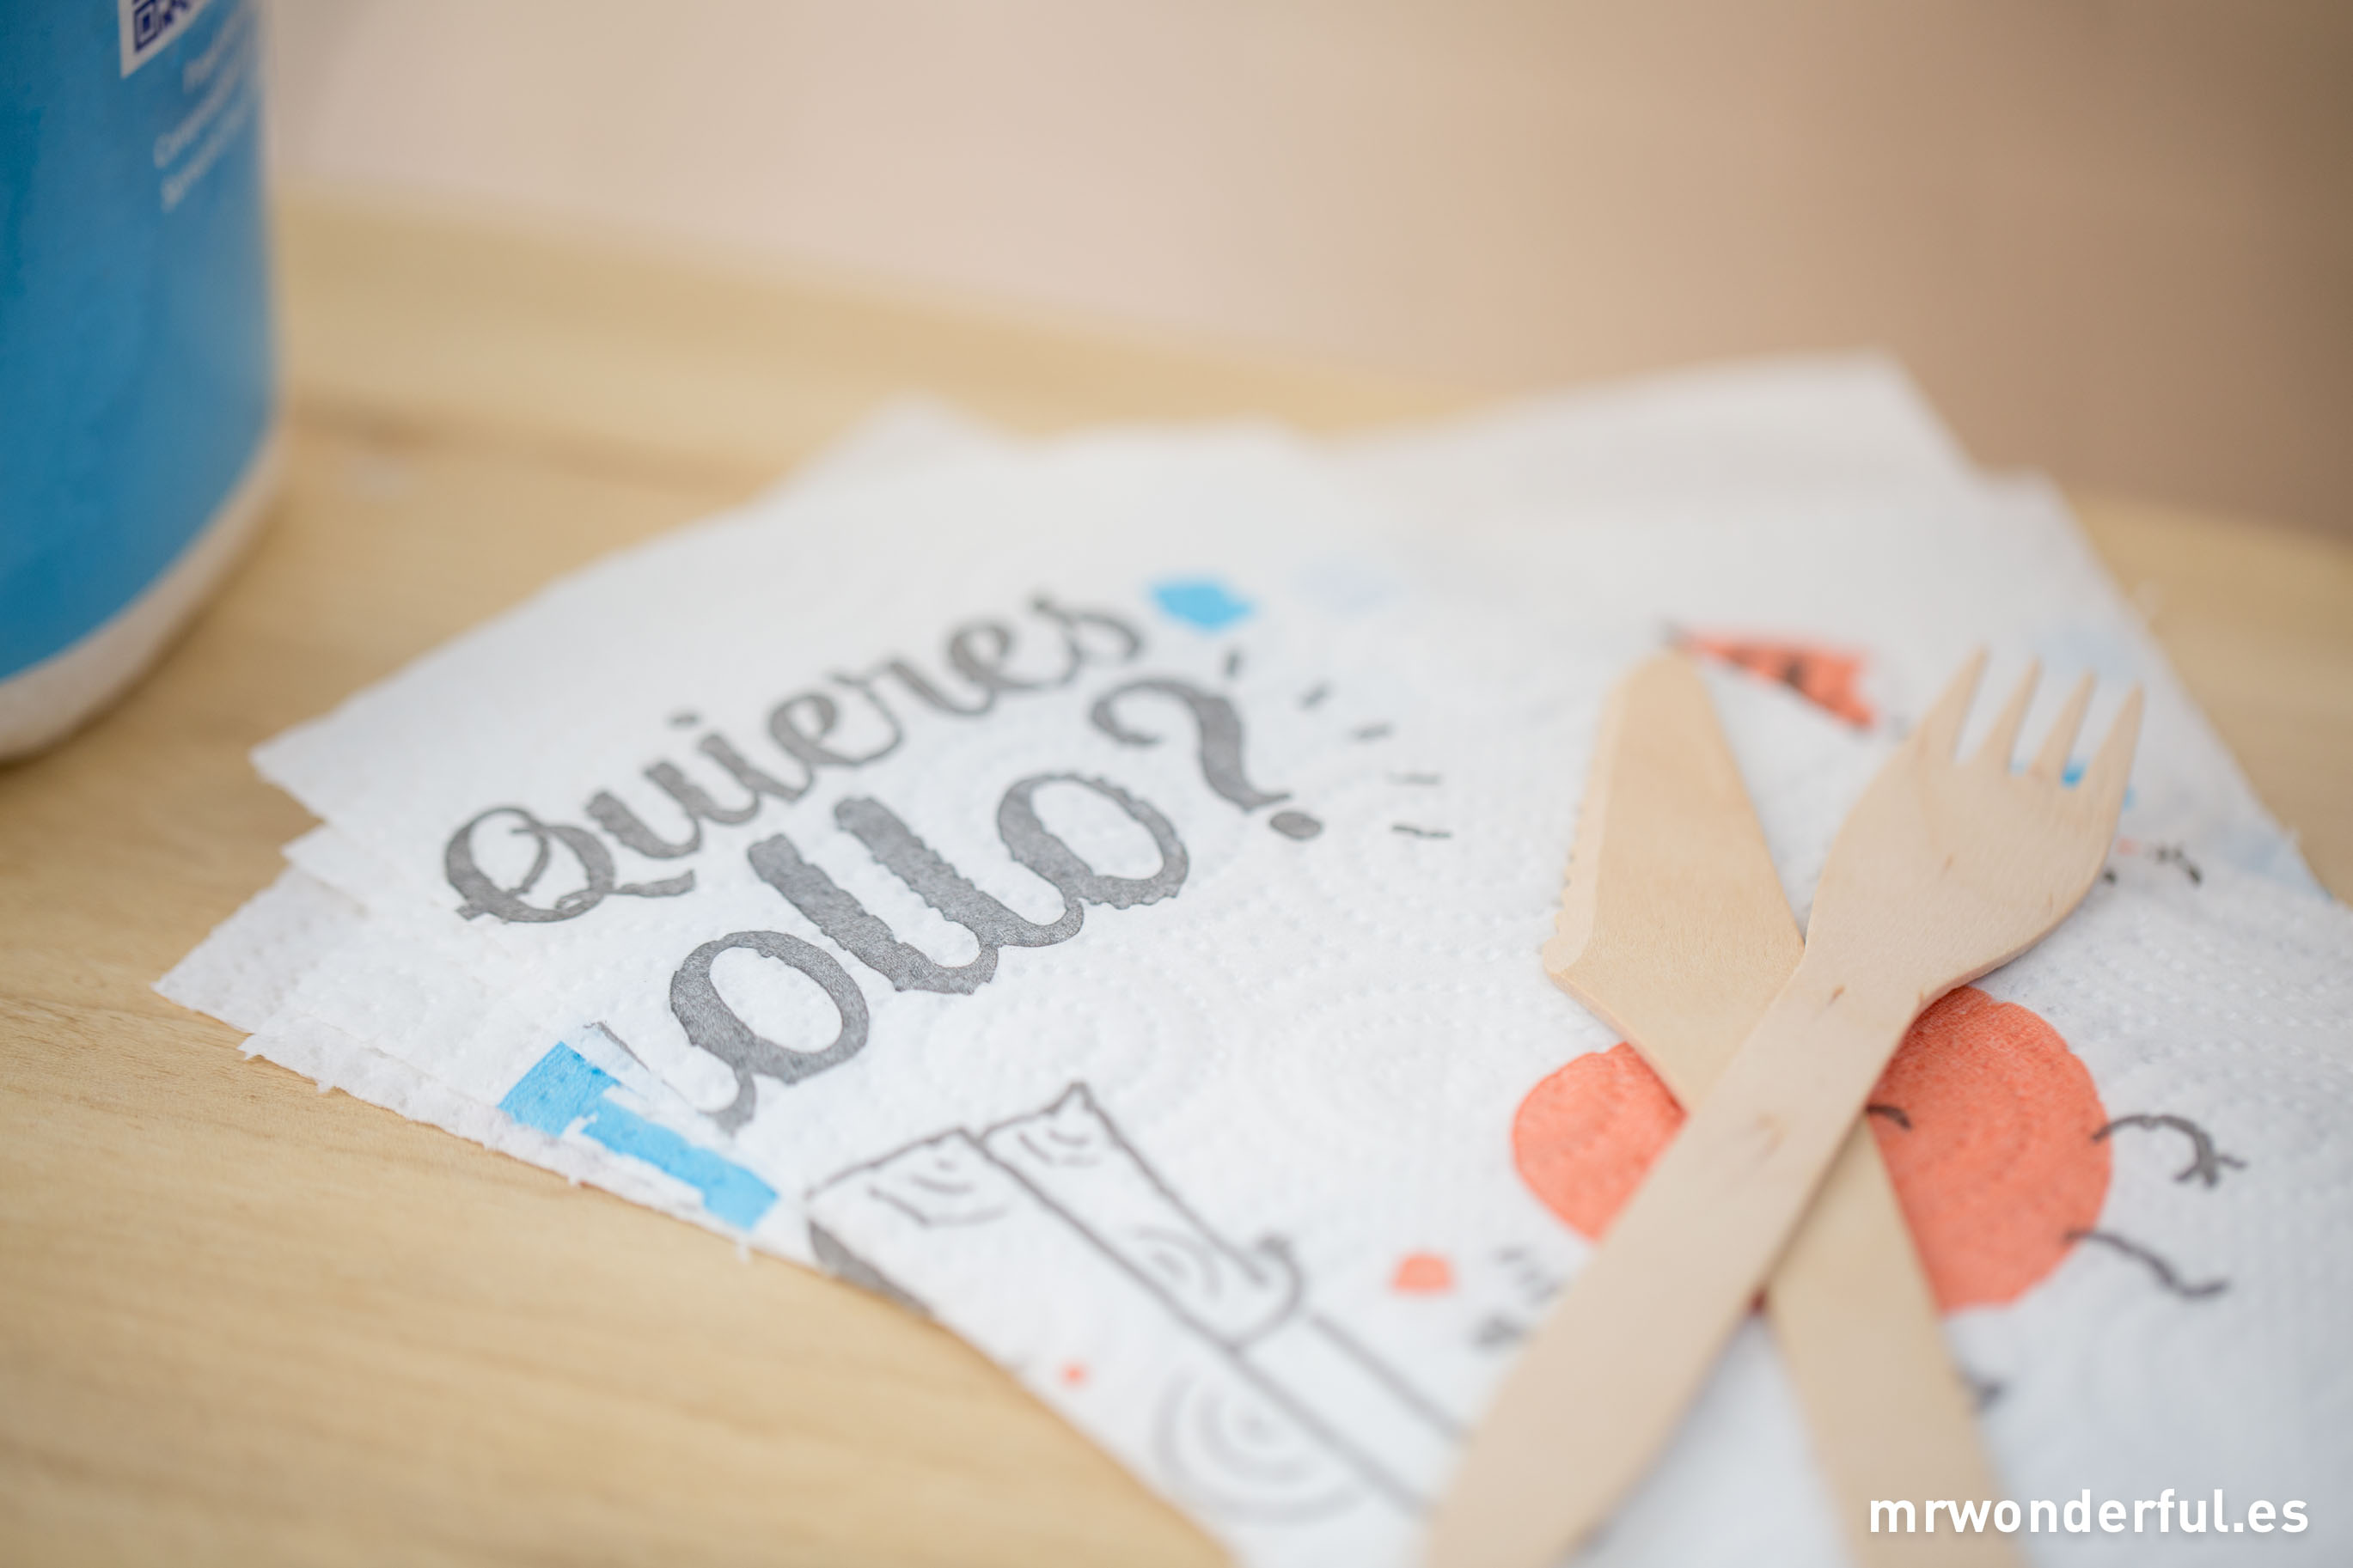 mrwonderful_colohogar-2015-papel-87